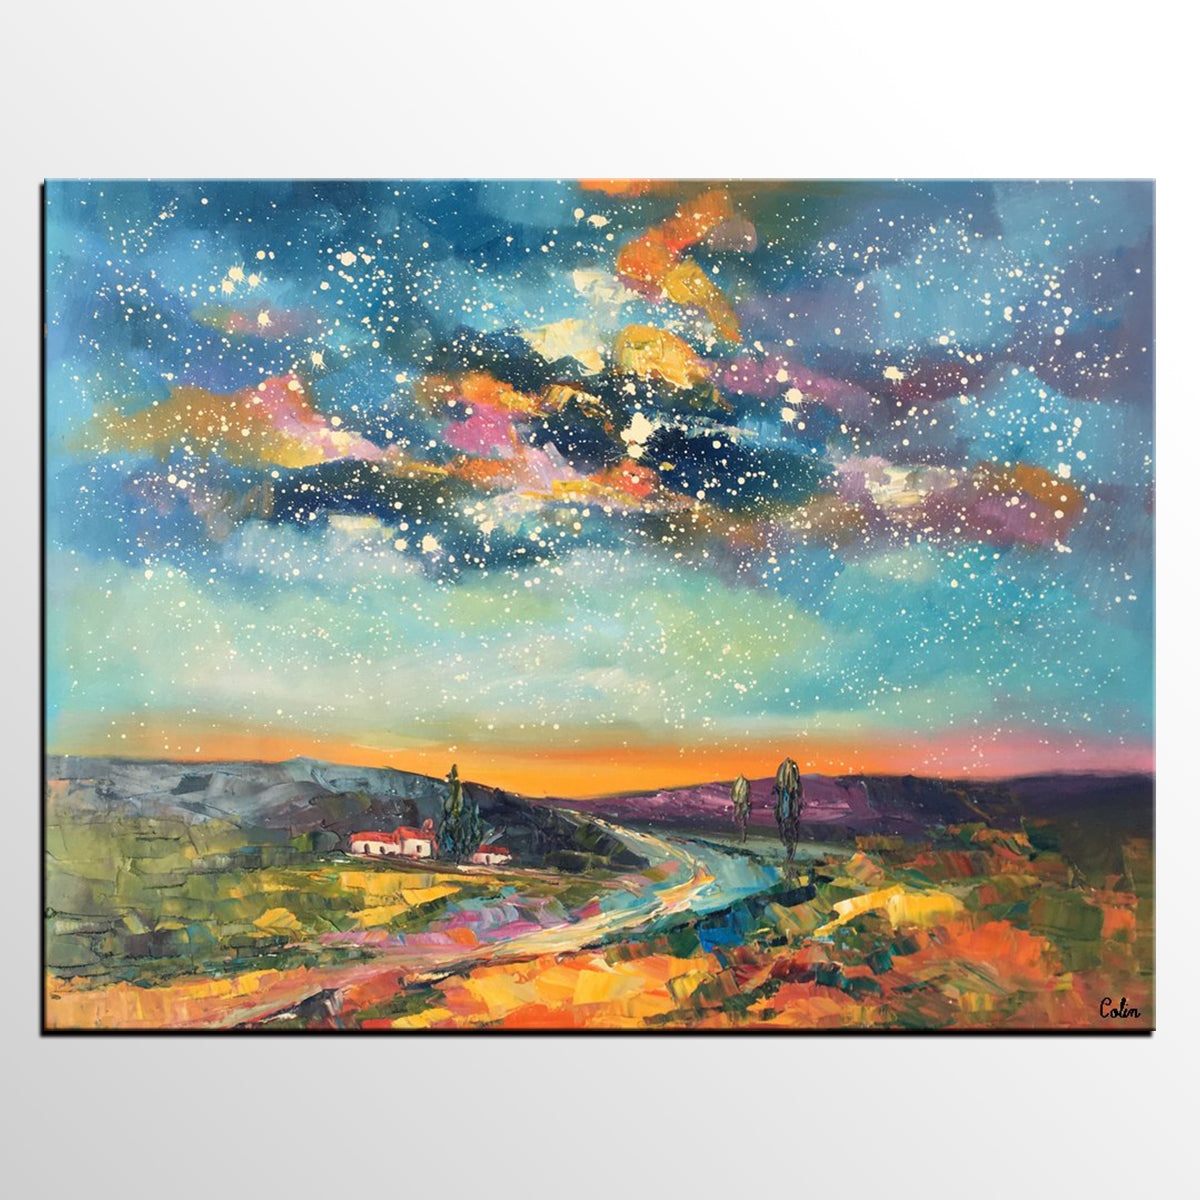 Canvas Wall Art, Abstract Landscape Art, Starry Night Sky, Bedroom Wall Art, Custom Abstract Art Painting, Oil Painting-artworkcanvas